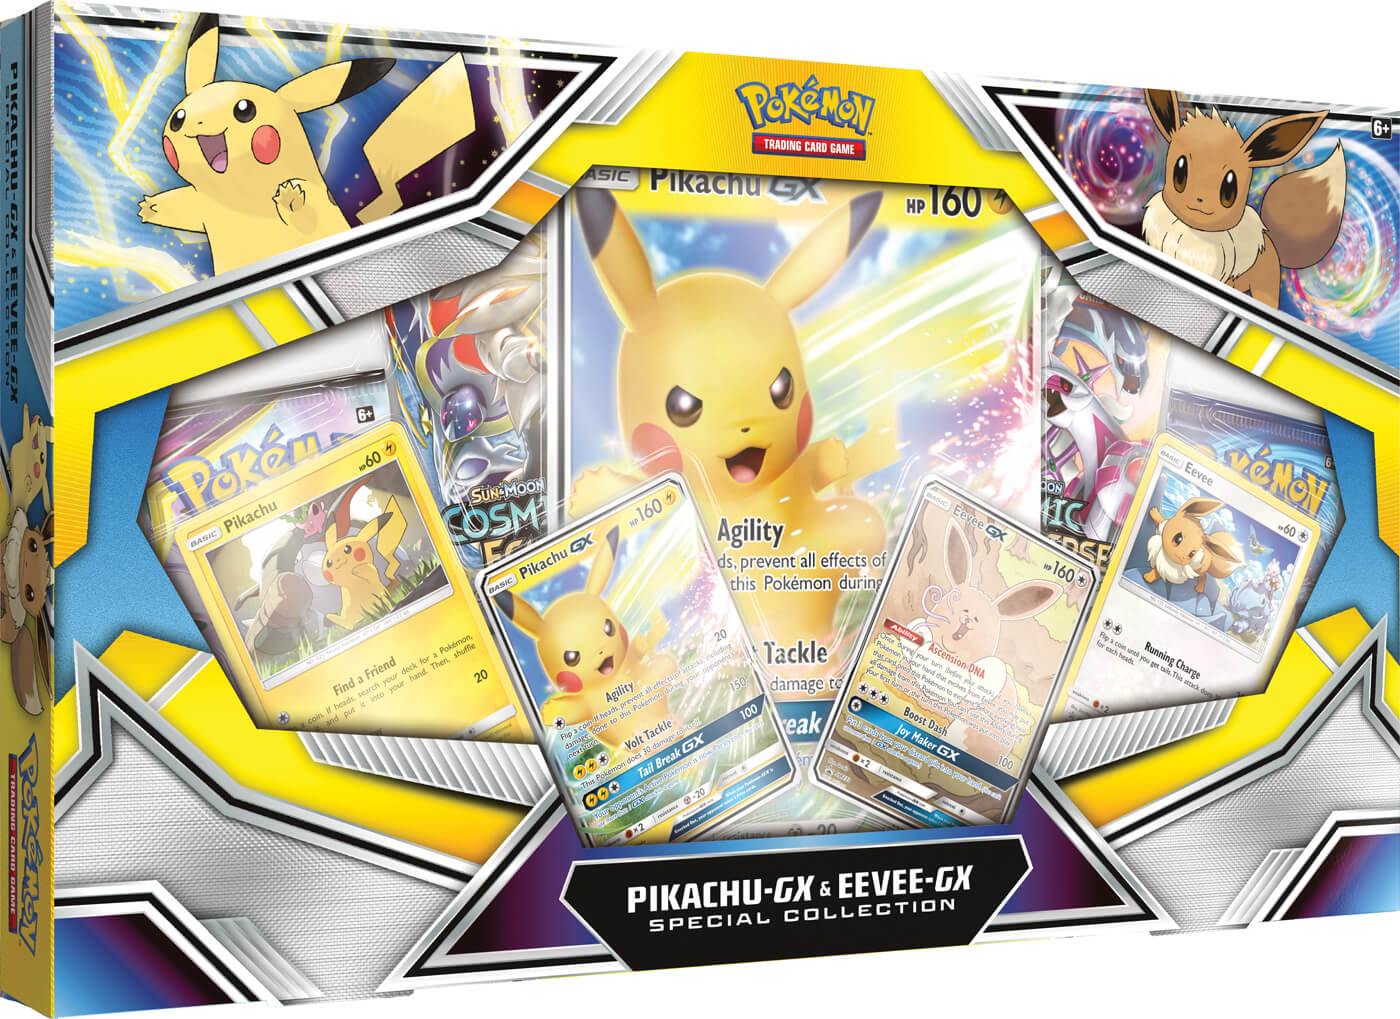 GX: Pikachu GX & Eevee GX Special Collection